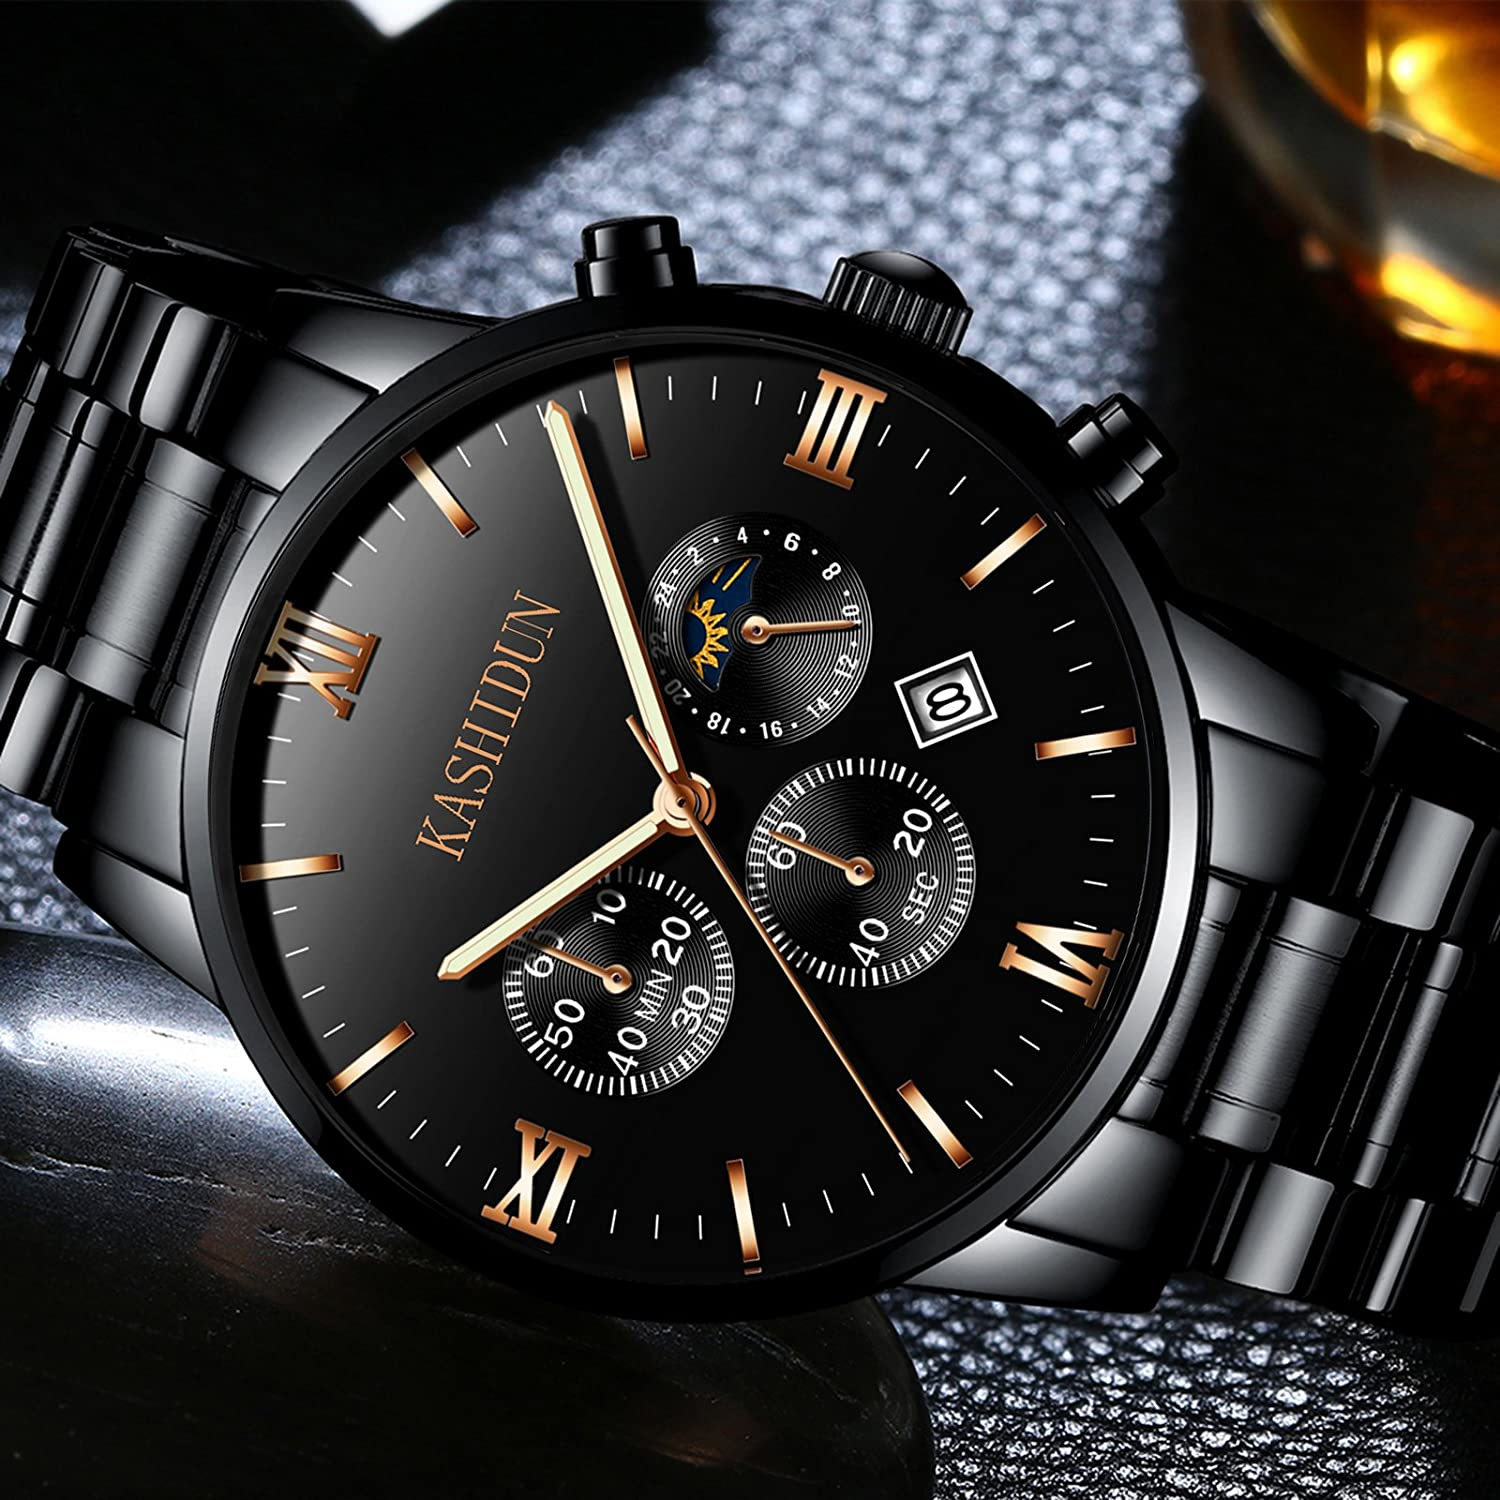 Amazon.com: KASHIDUN Mens Watches Luxury Sports Military Quartz Wristwatches Waterproof Chronograph Black Watches ZH-JzHG: Watches